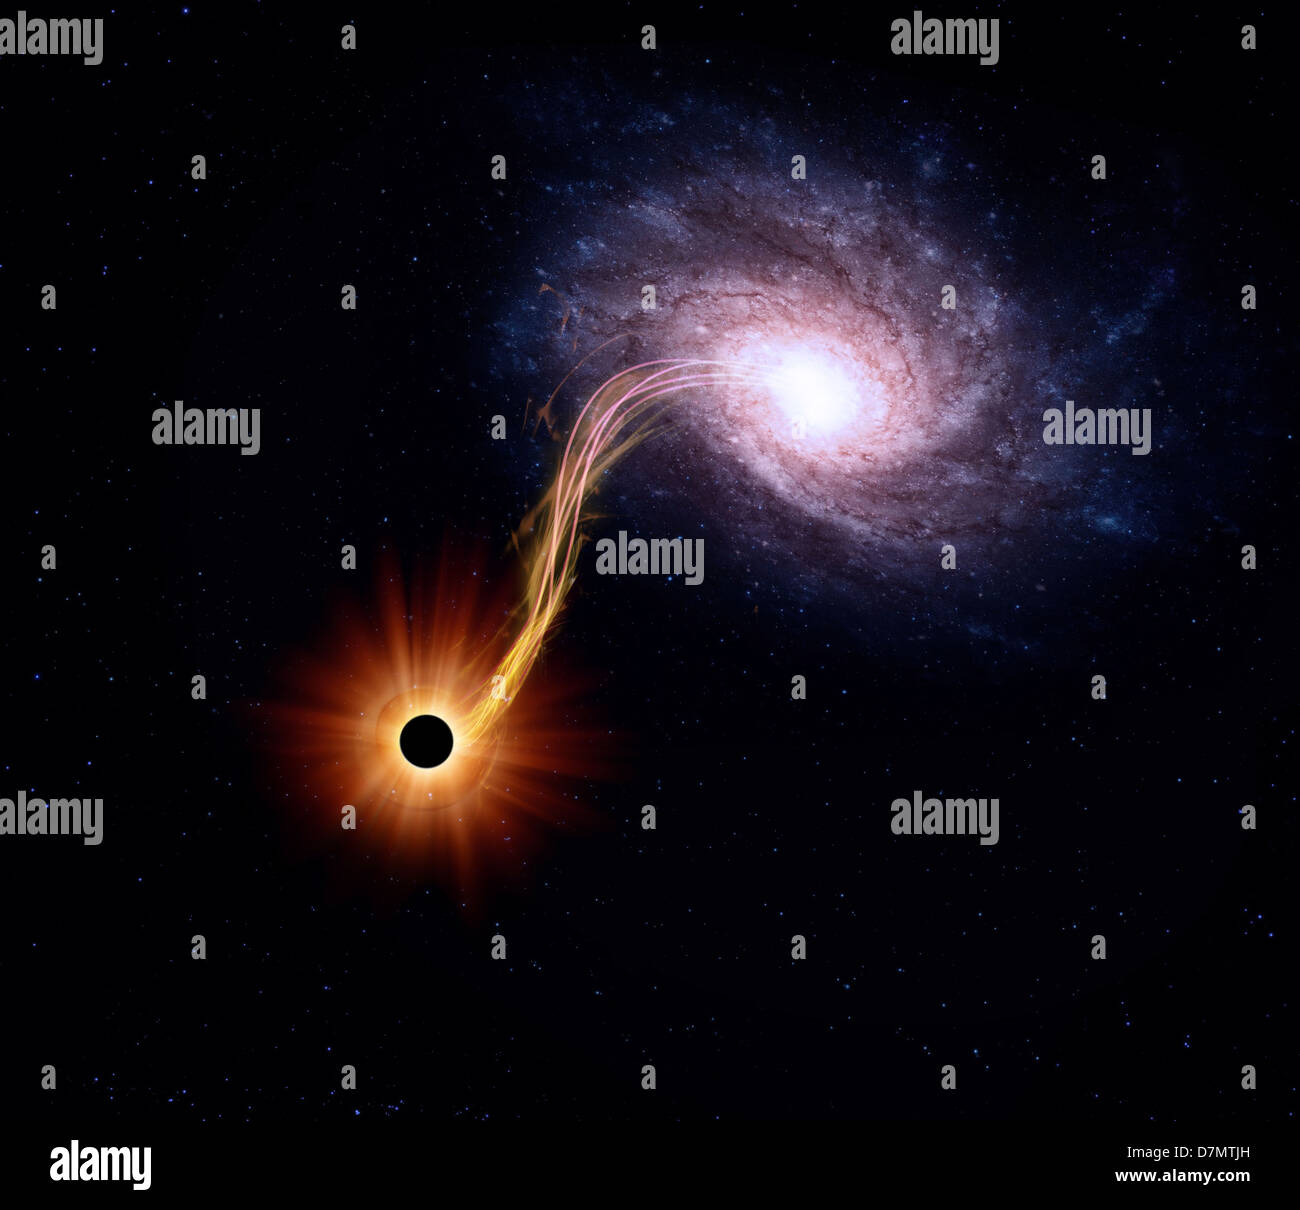 Spiral galaxy and black hole, artwork Stock Photo ...